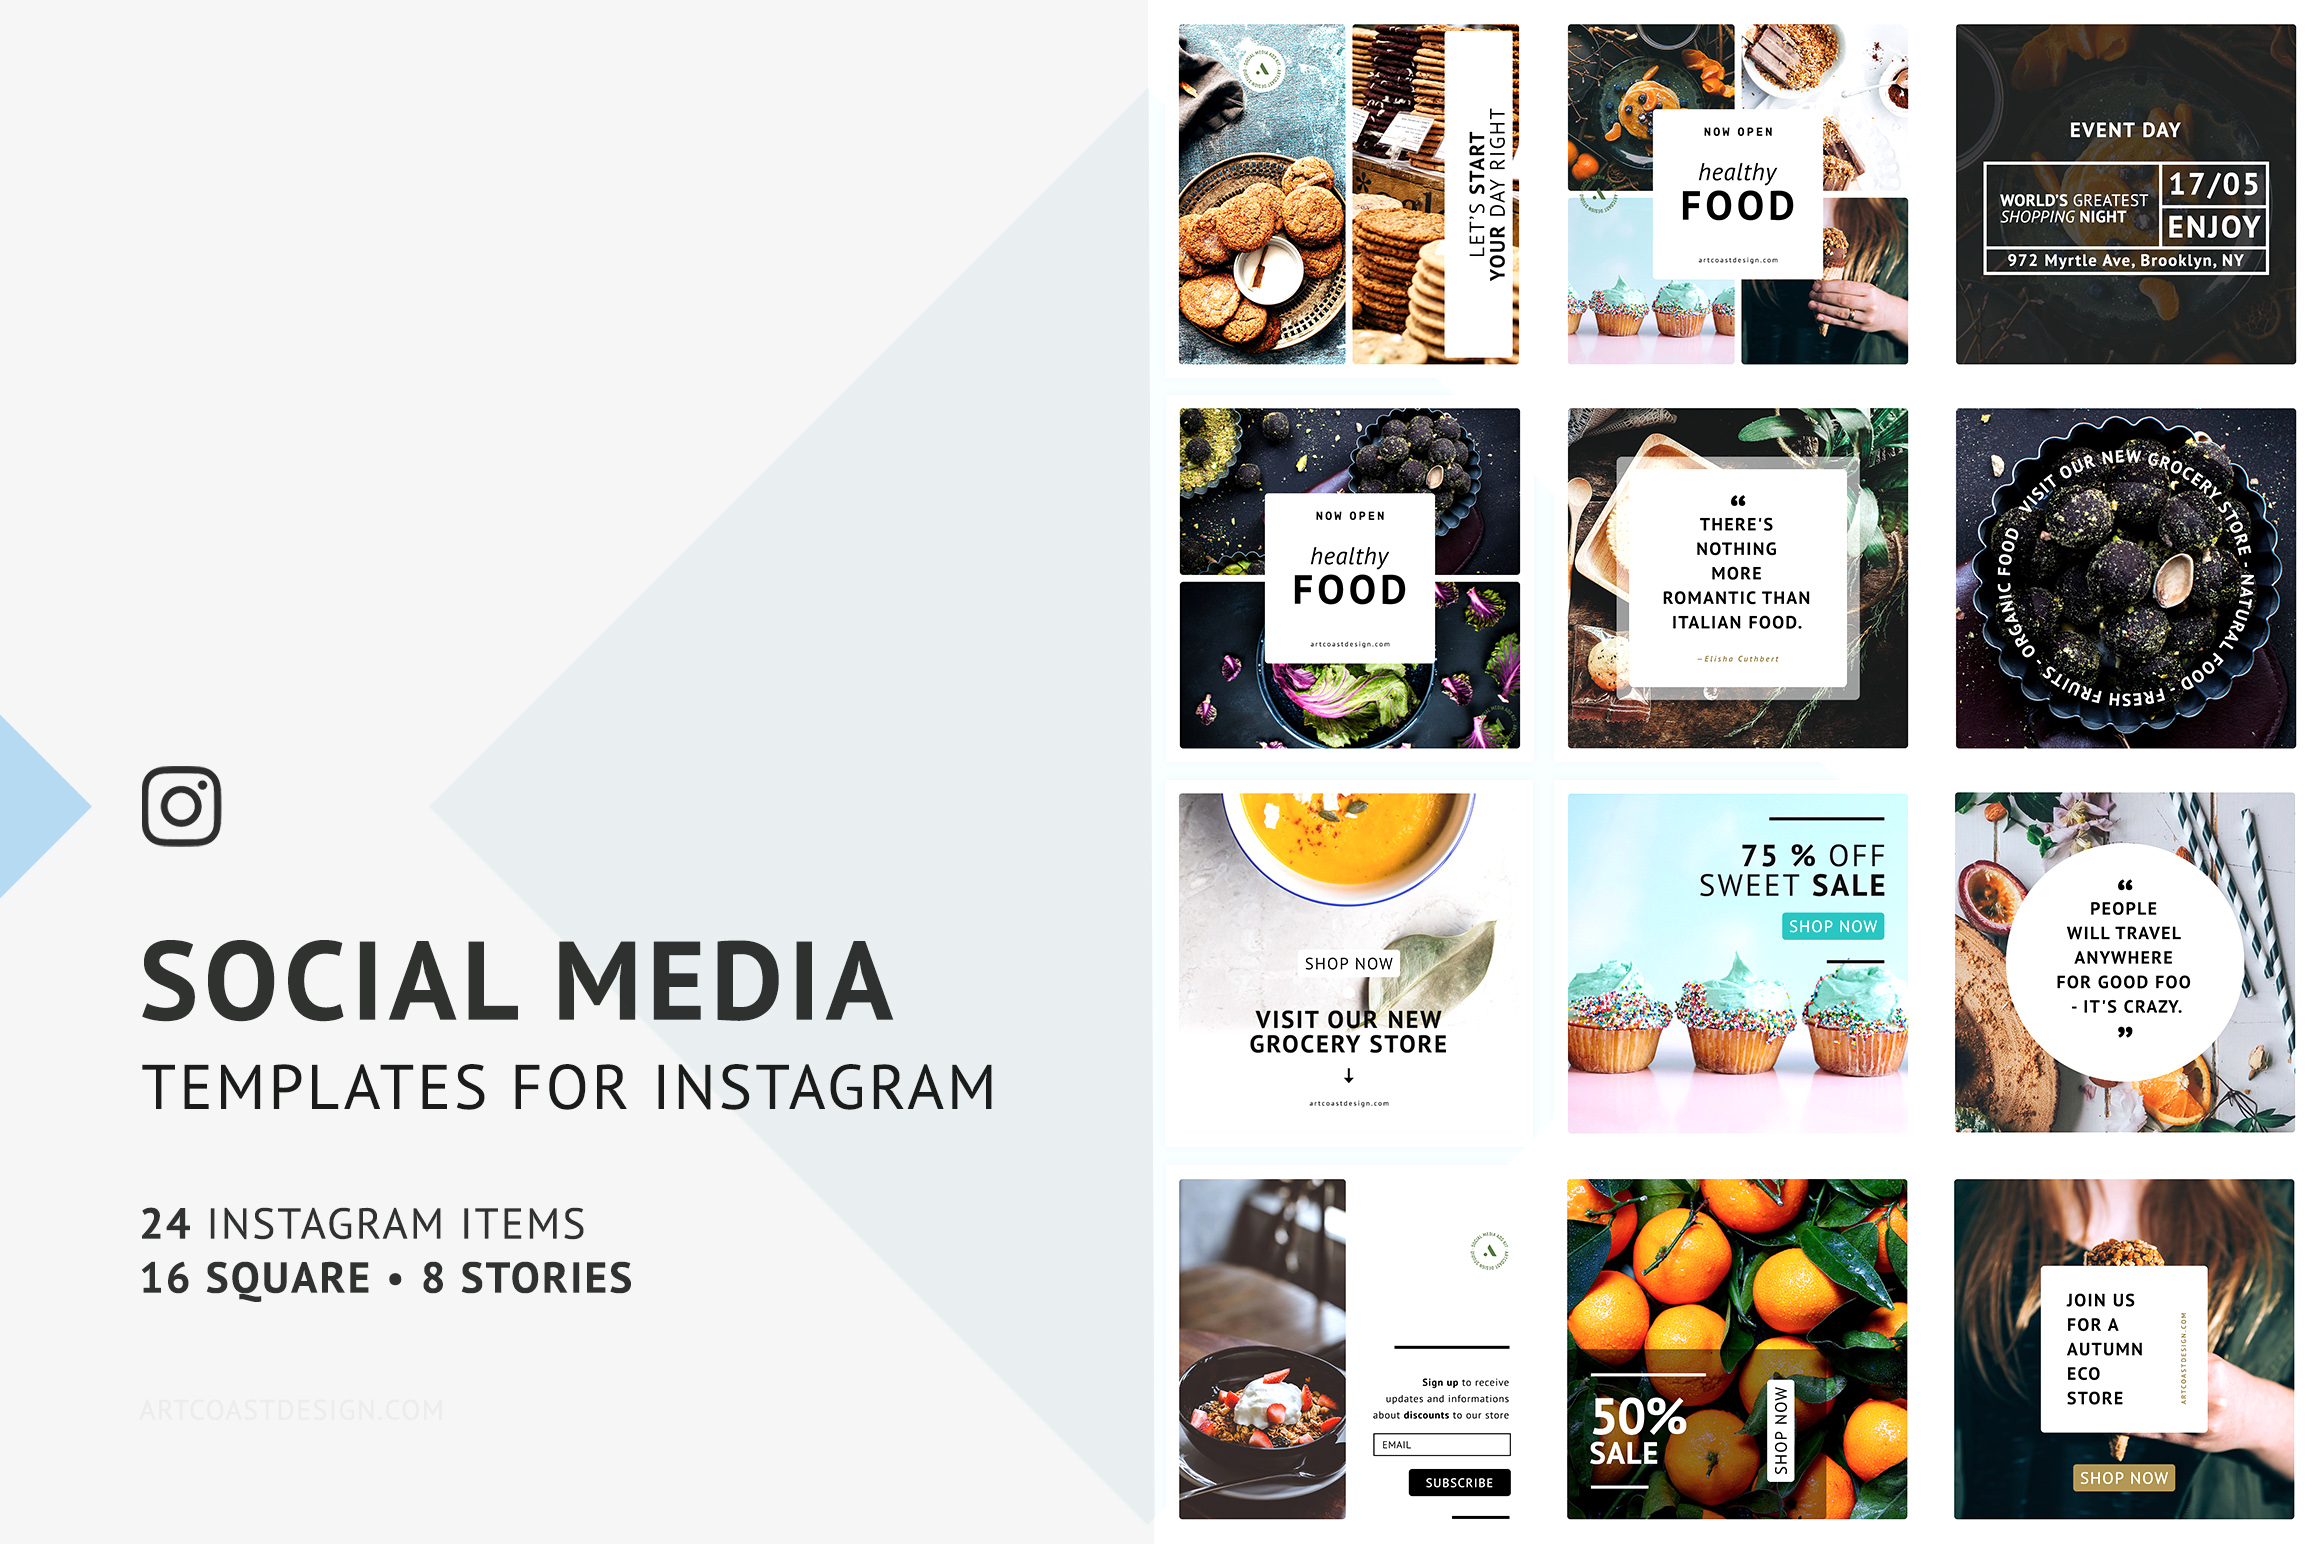 24 Instagram Templates Graphic Graphic Templates By Dmitry Mashkin - Image 6